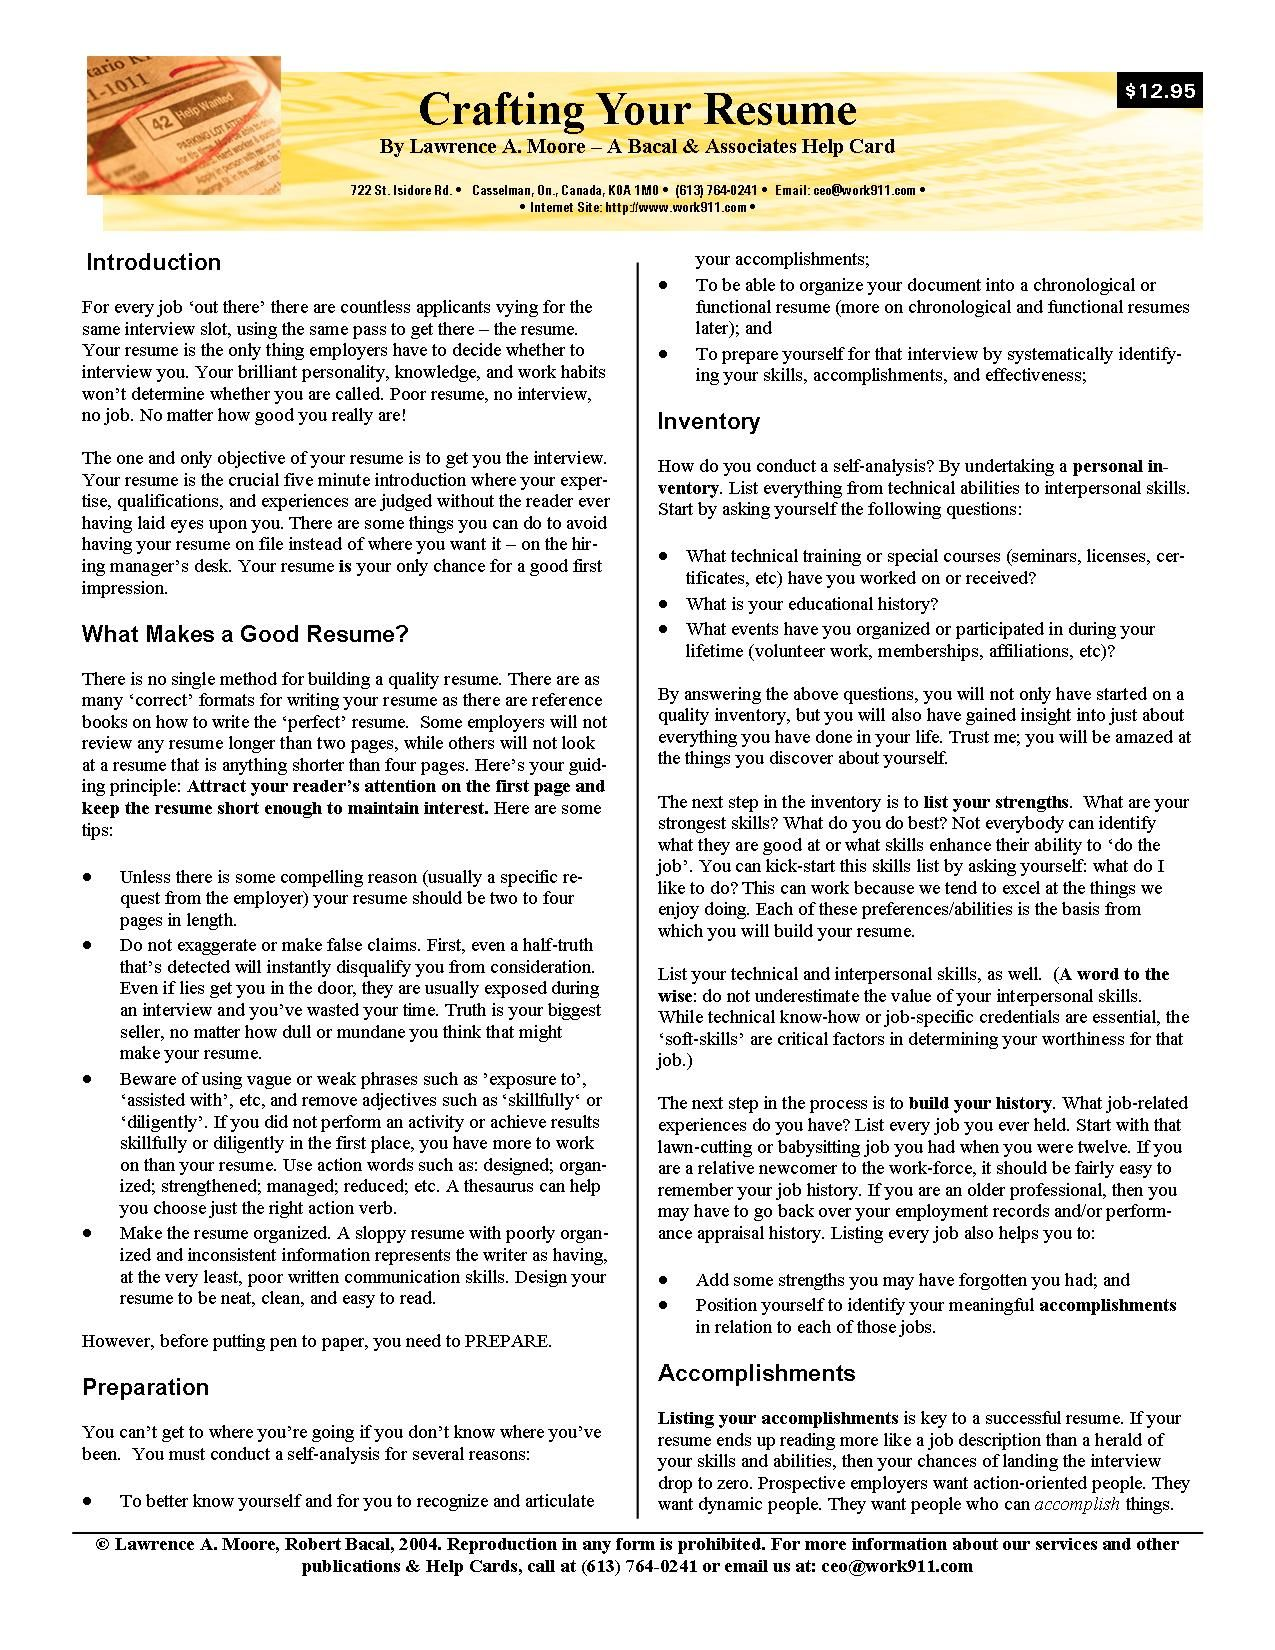 Hints For Good Resumes Crafting Your Resume Tips Hints Advice On Resume Writing In A